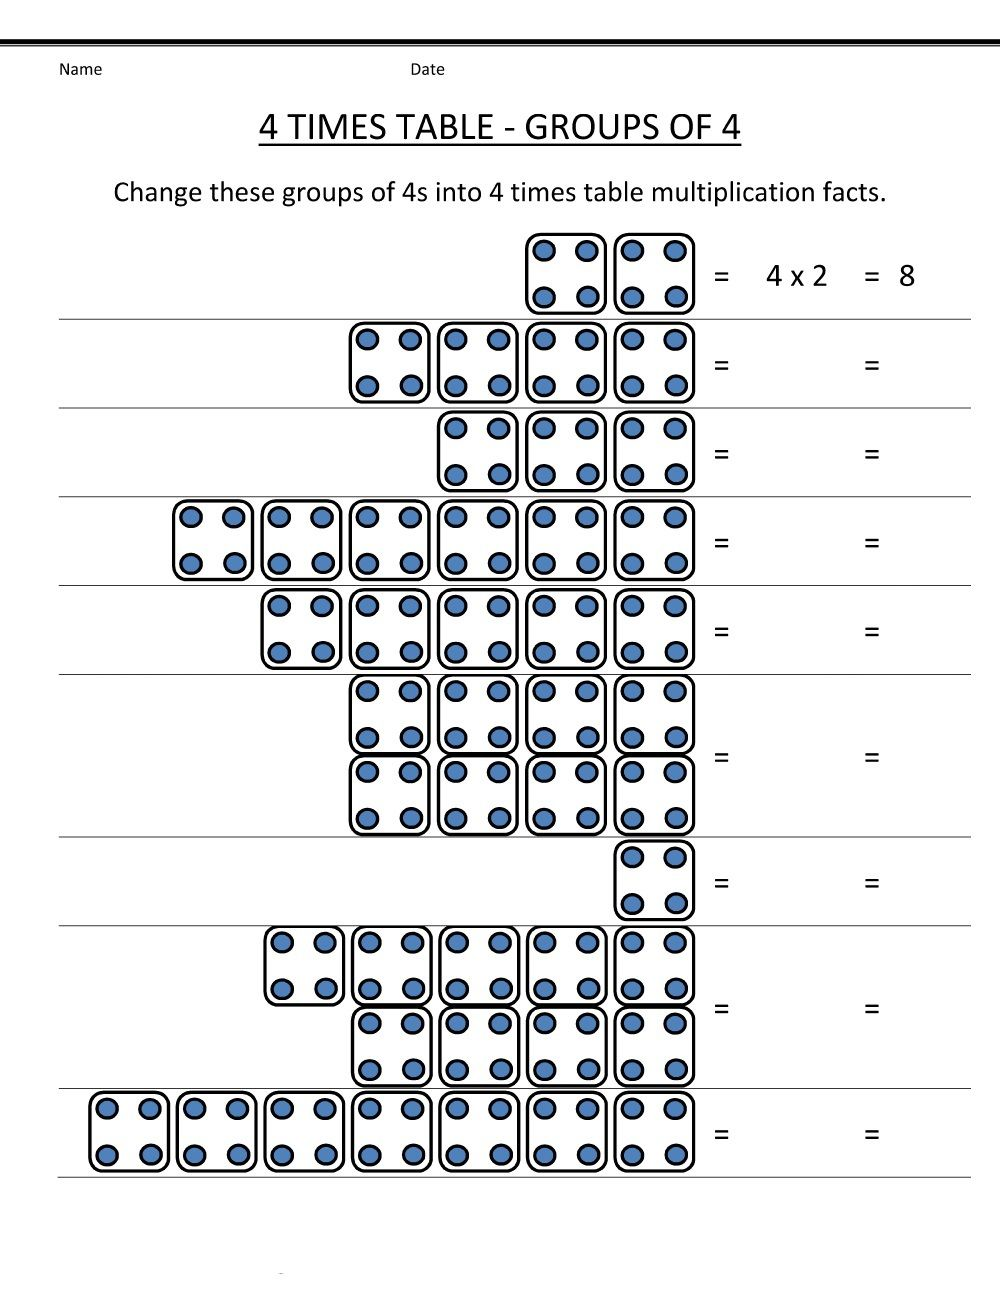 4 Times Tables Worksheets Free Printable Educative Printable Times Tables Worksheets Times Tables 4 Times Table